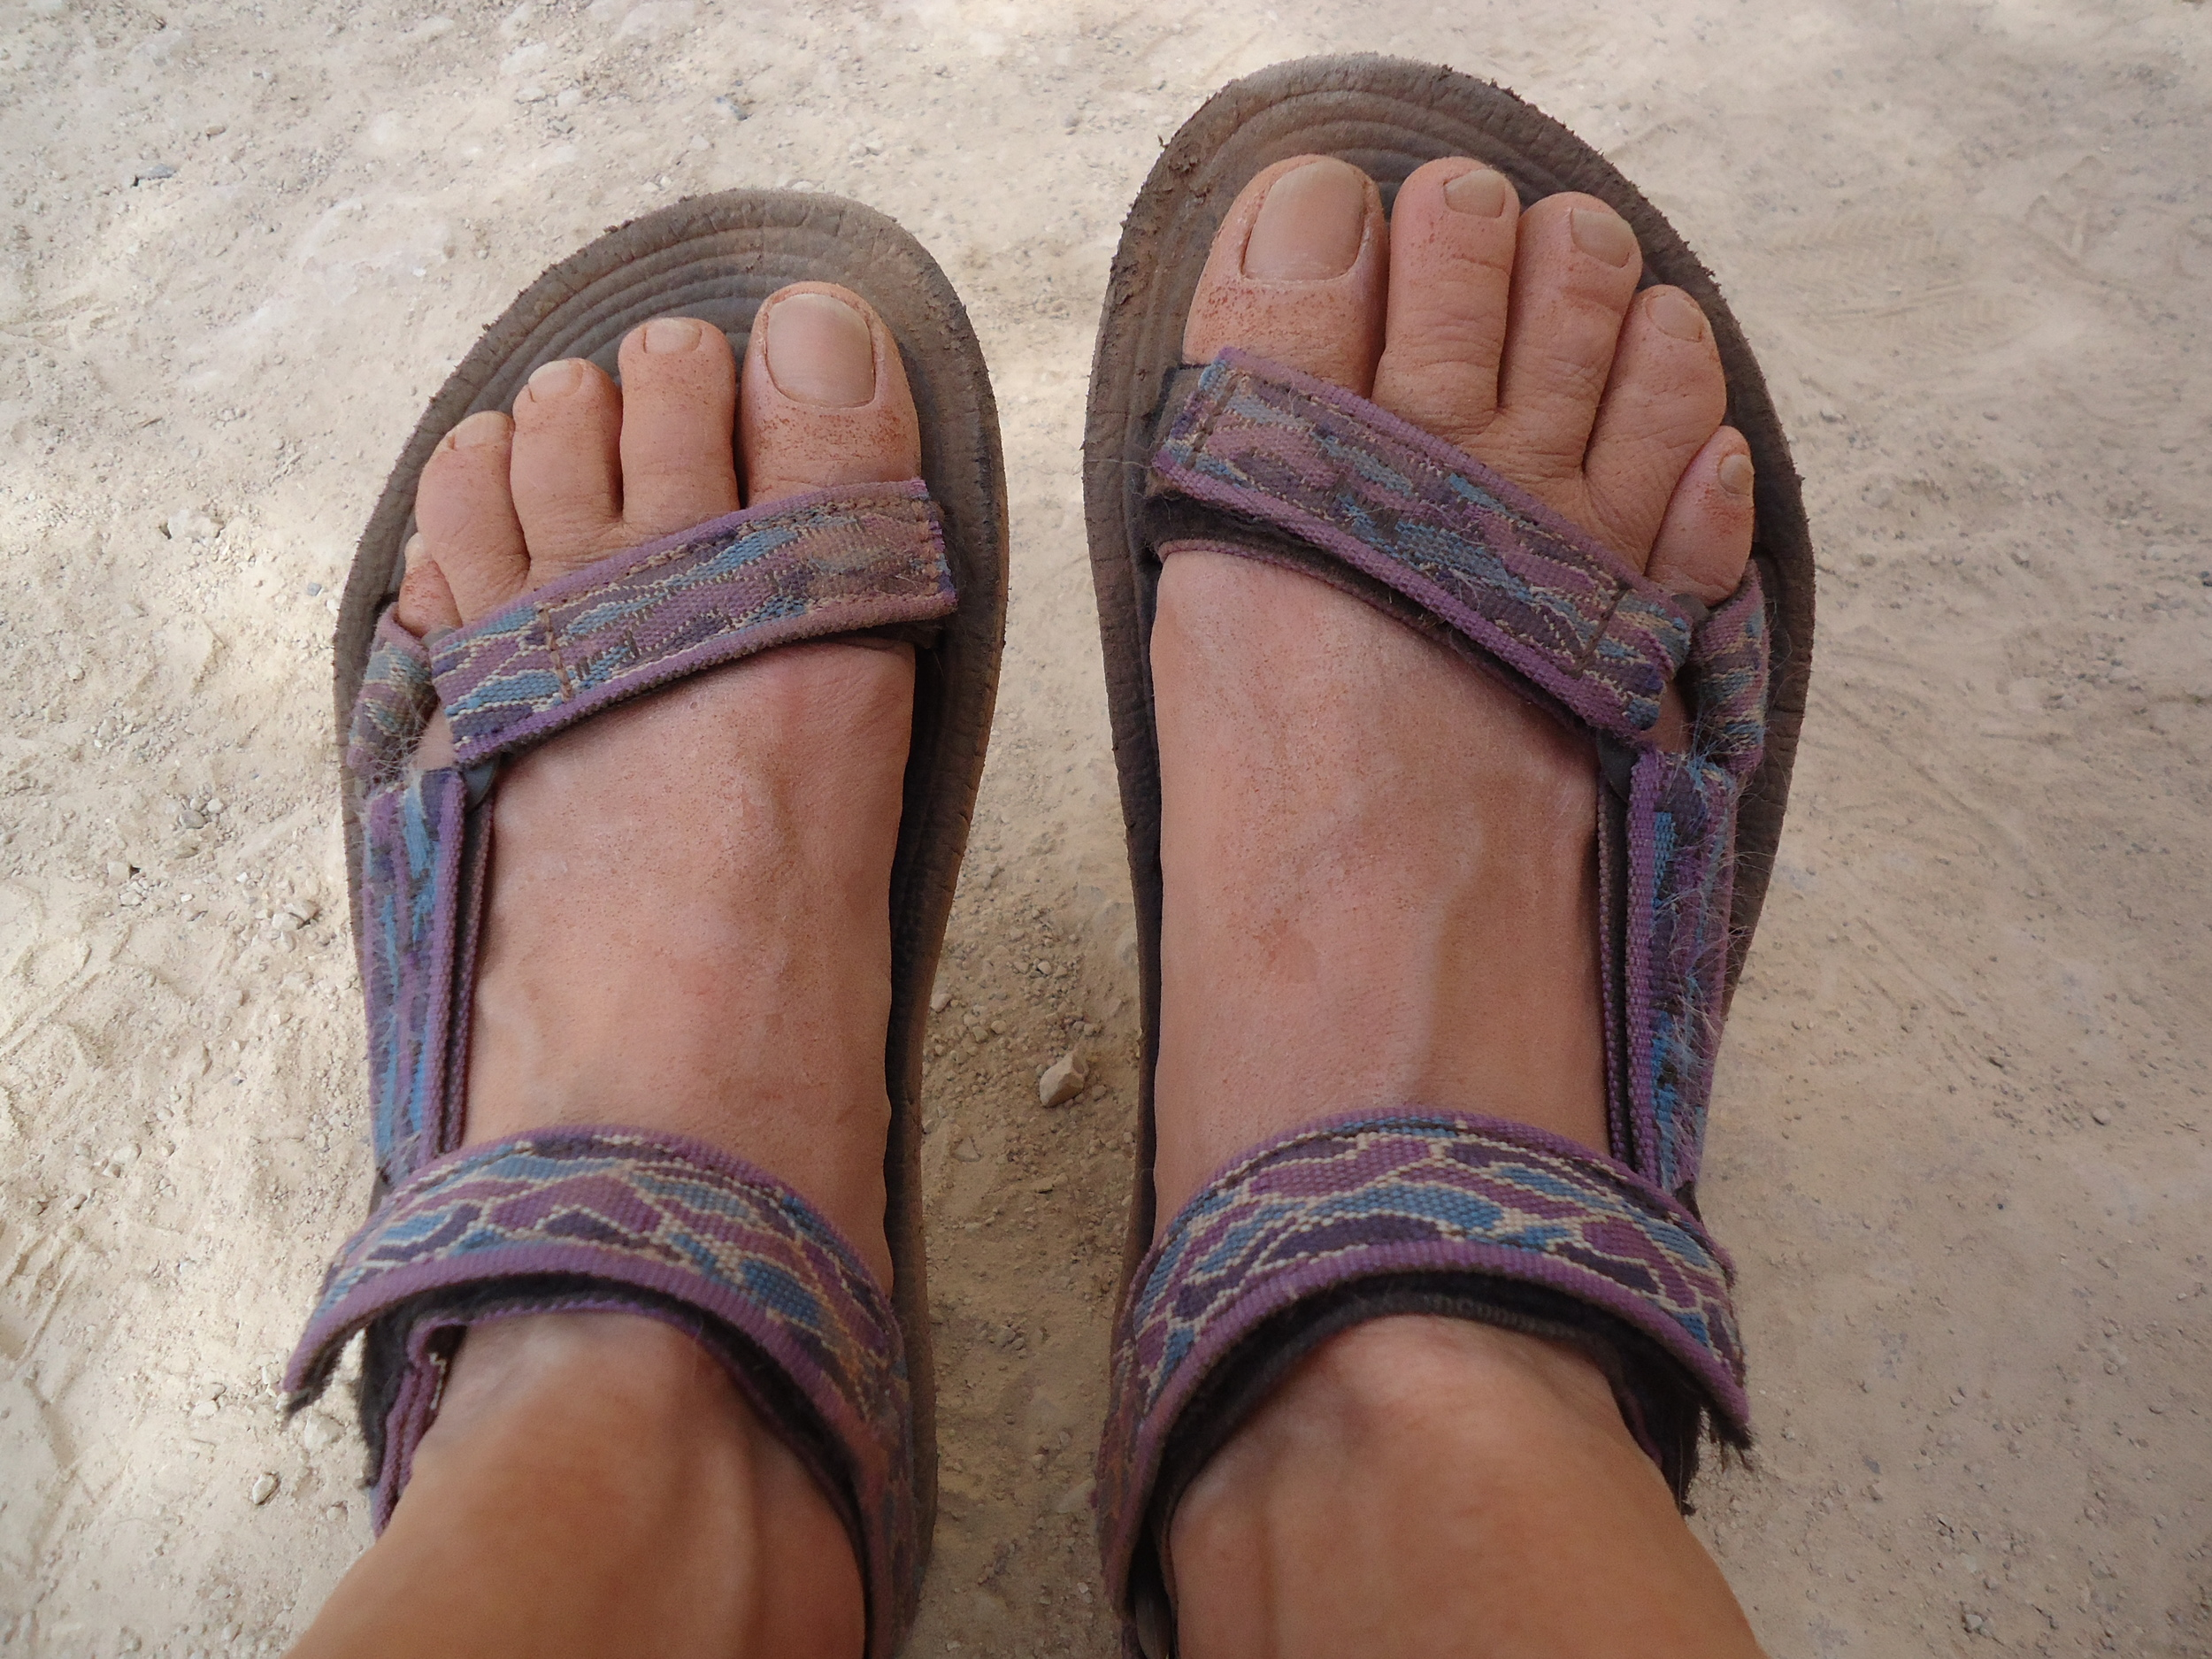 My dirty feet and tattered Teva sandals after a day of canyon hiking!